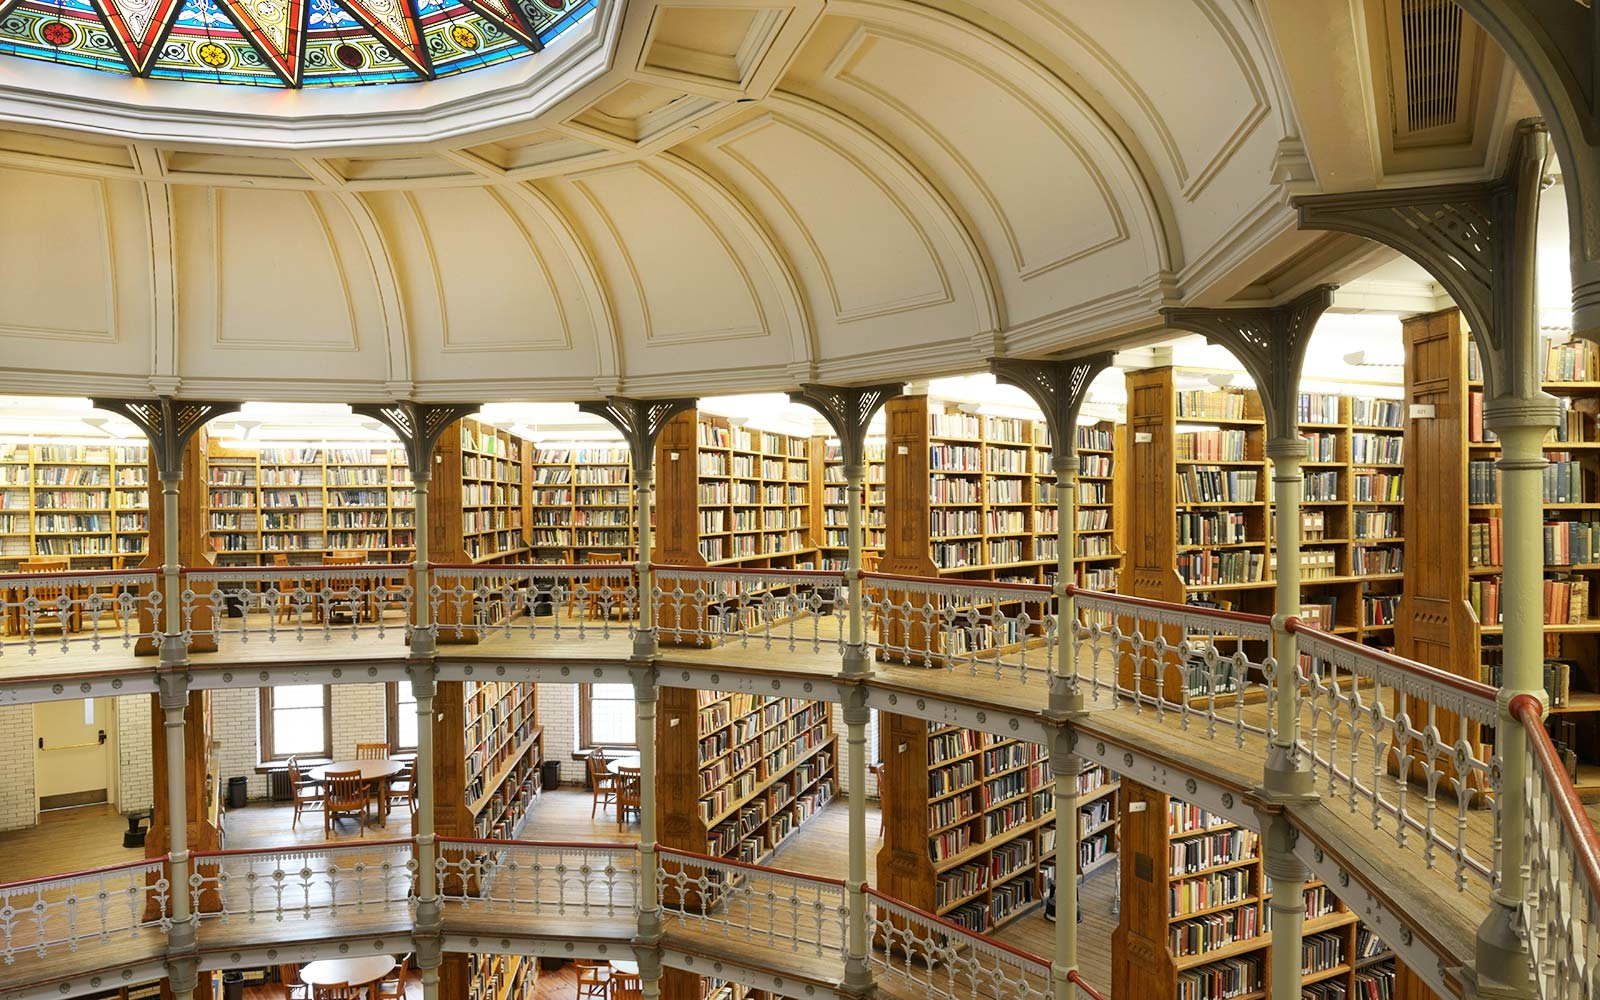 Top 100 Largest Libraries In The World - P50.Lehigh